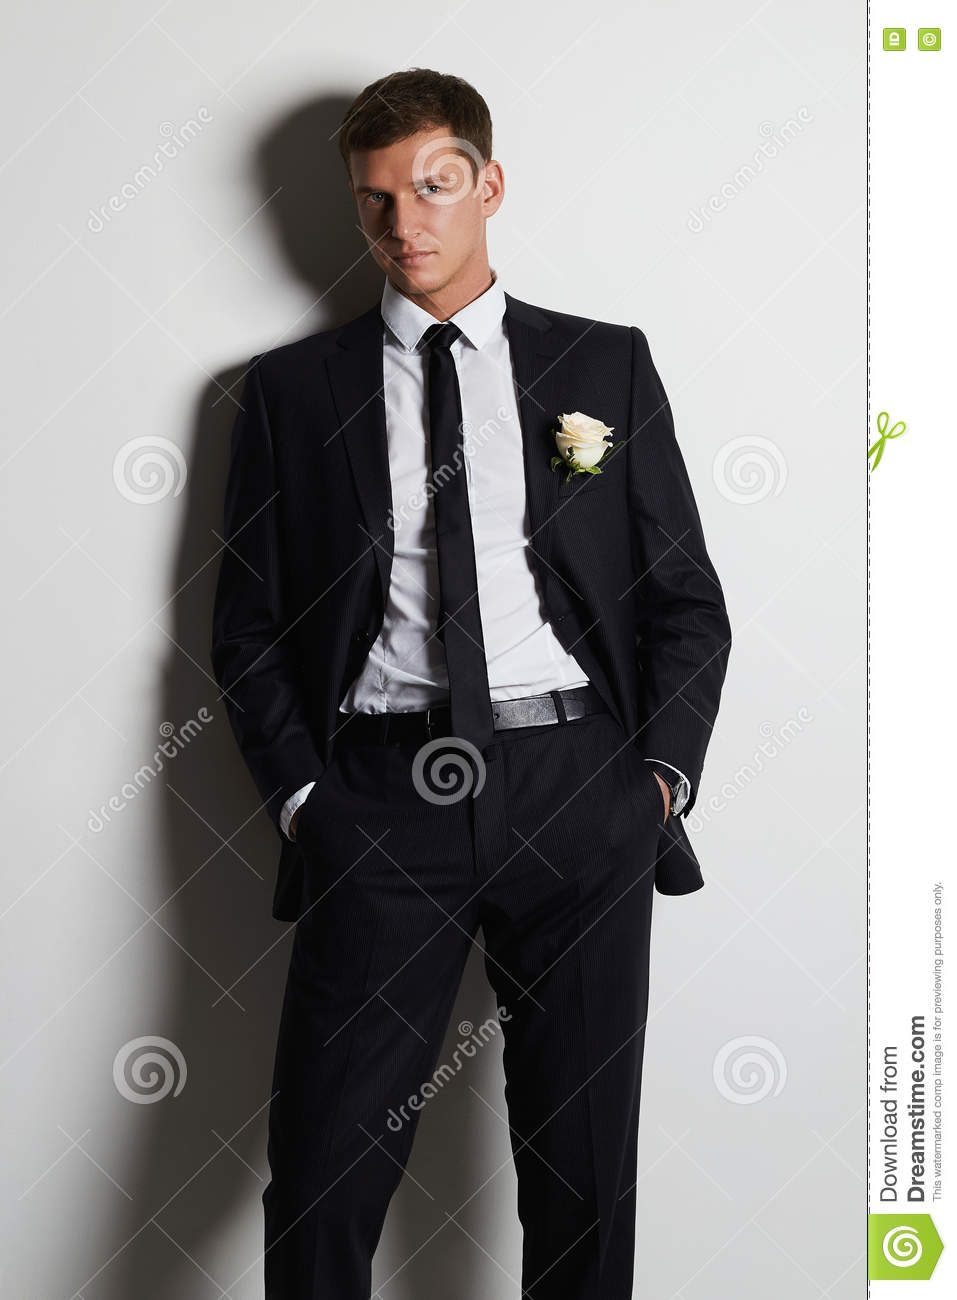 homme avec la fleur homme de mari de jeunes dans le costume photo stock image 70745515. Black Bedroom Furniture Sets. Home Design Ideas